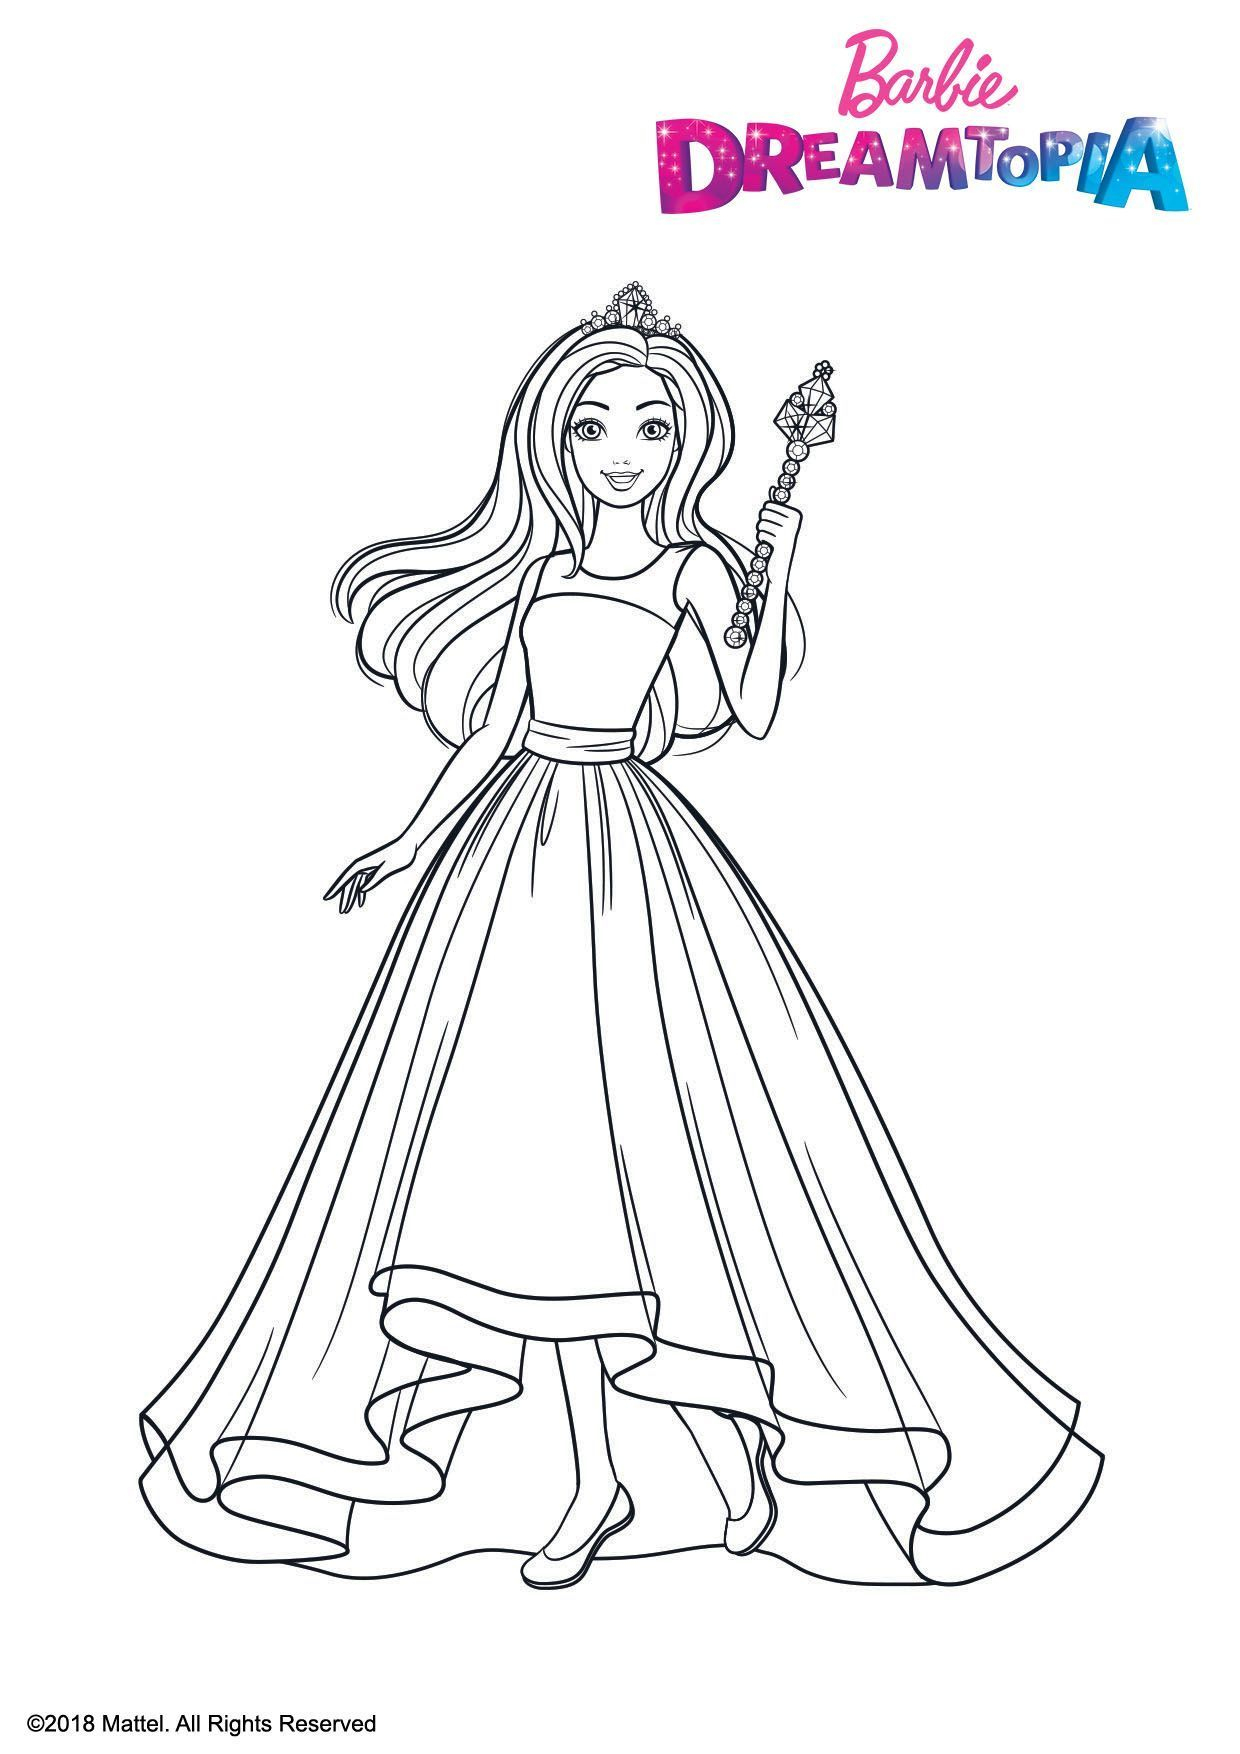 Coloriage Barbie Princesse Arc-En-Ciel - Coloriage Barbie concernant Arc En Ciel A Colorier